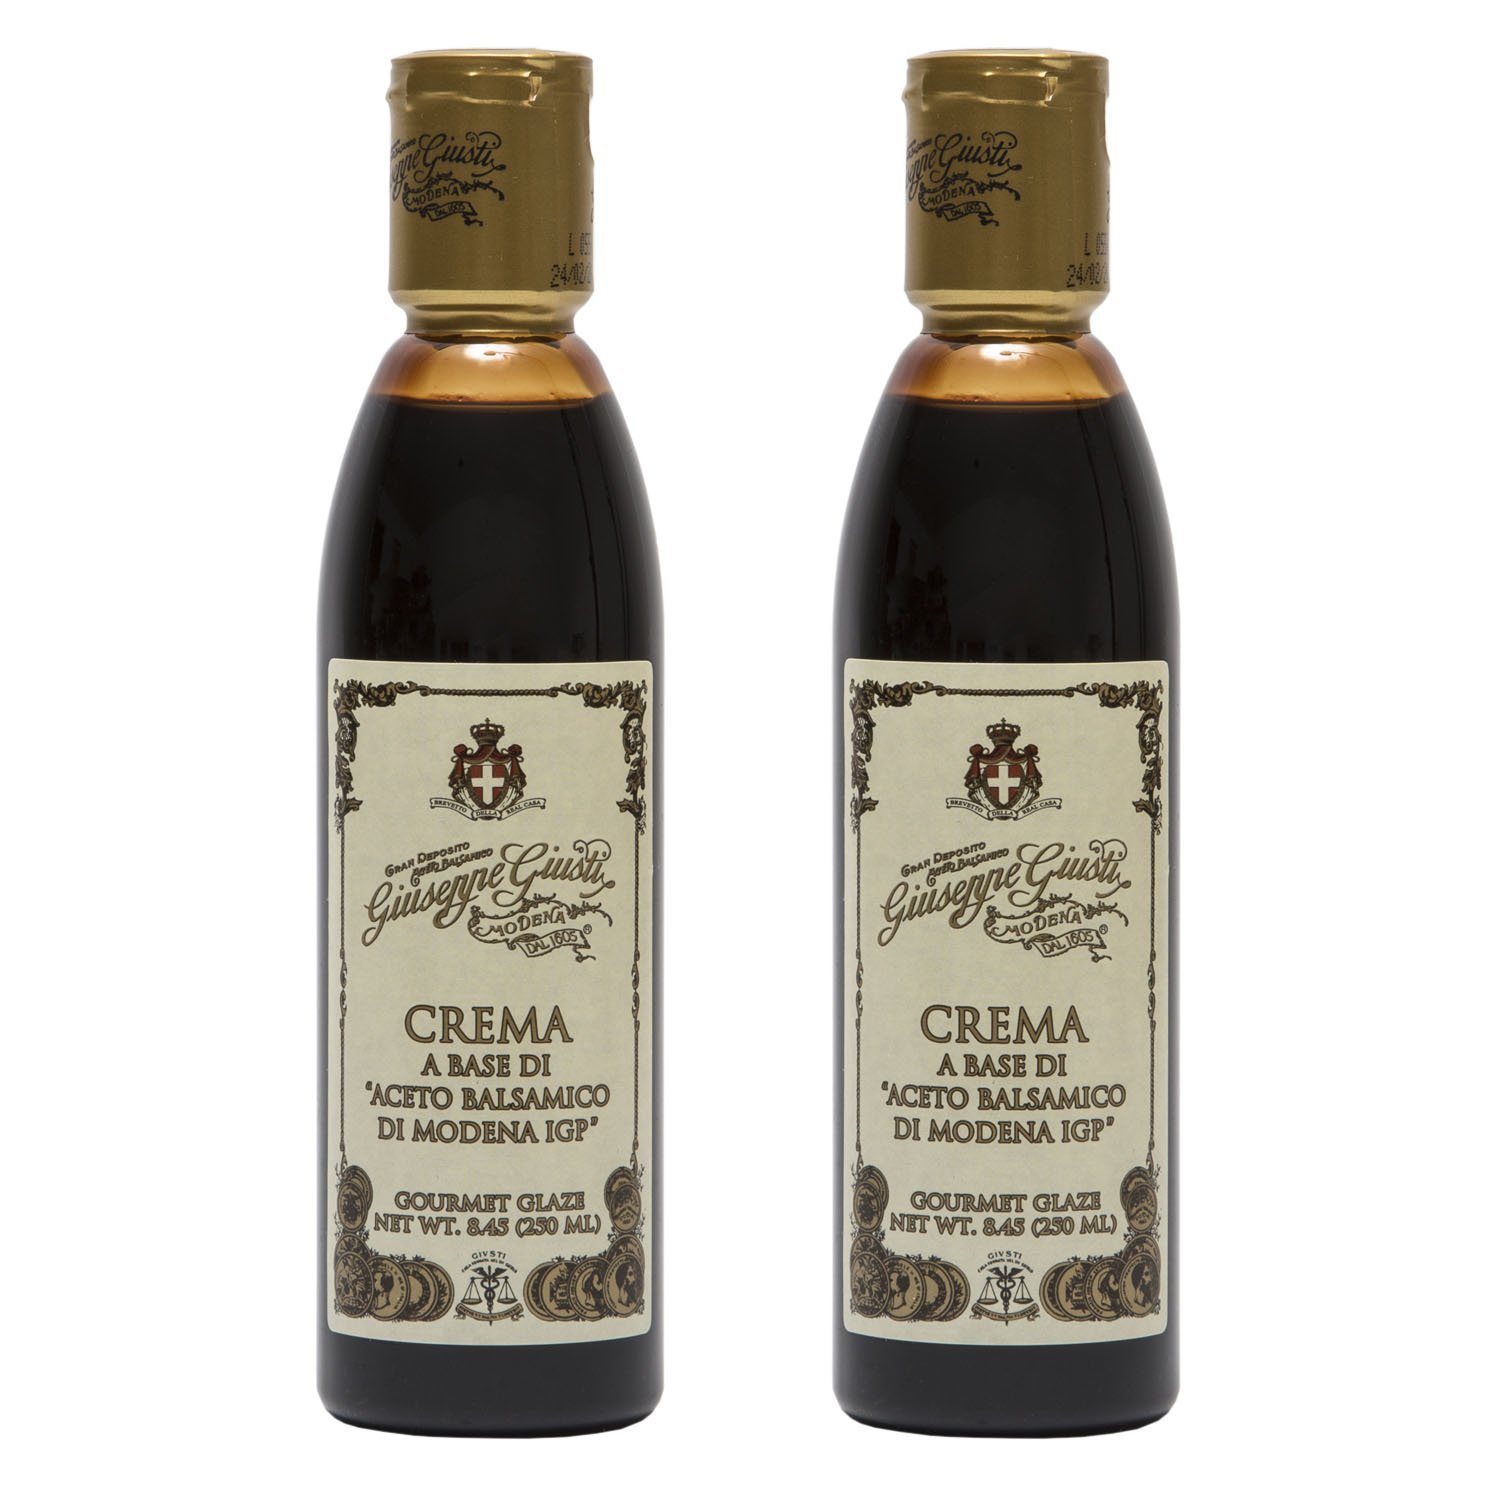 Giuseppe Giusti Italian Crema Balsamic Glaze Vinegar Reduction Of Modena Igp 8 45 Fl Oz 250ml Pack Of 2 Walmart Com Walmart Com